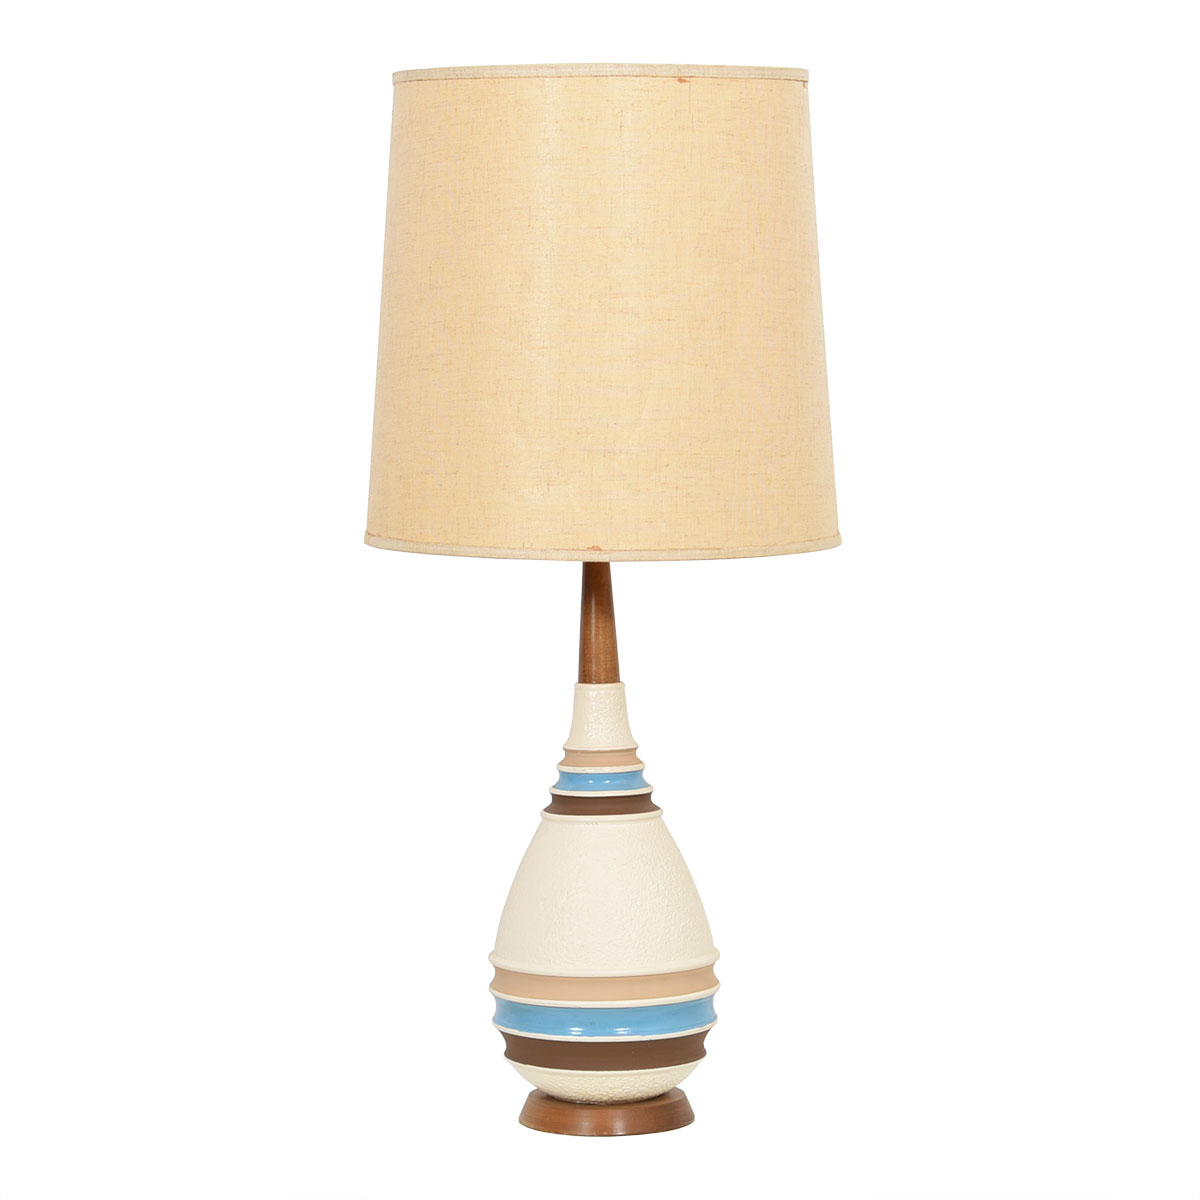 Mid Century Textured Table Lamp with Tan Blue & Brown